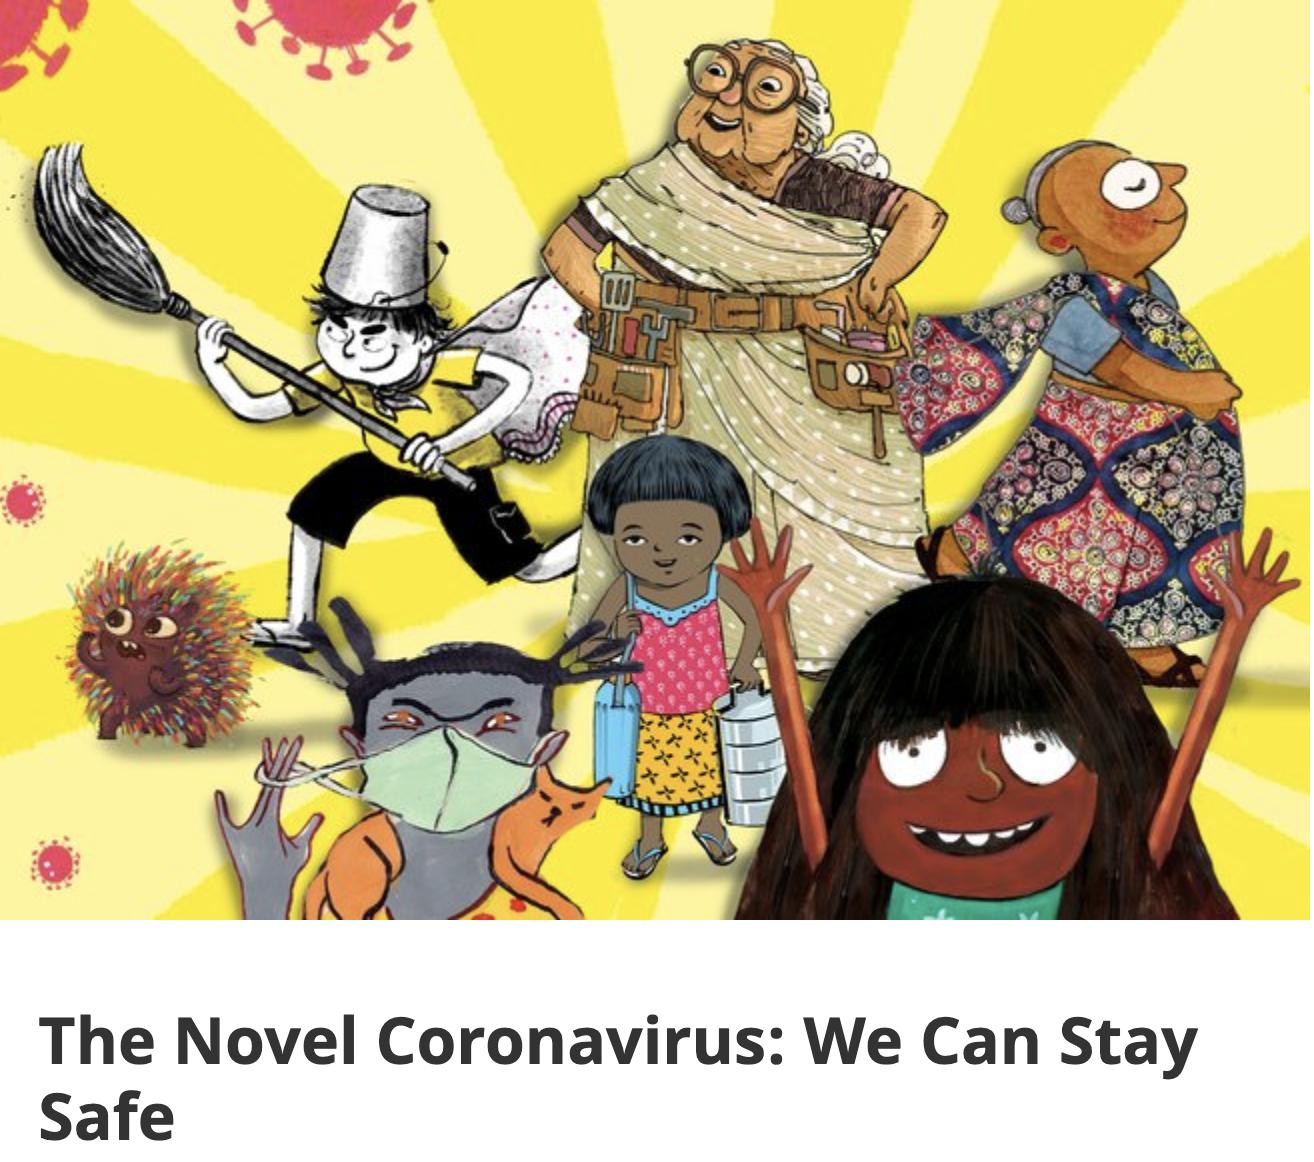 The Novel Coronavirus: We Can Stay Safe